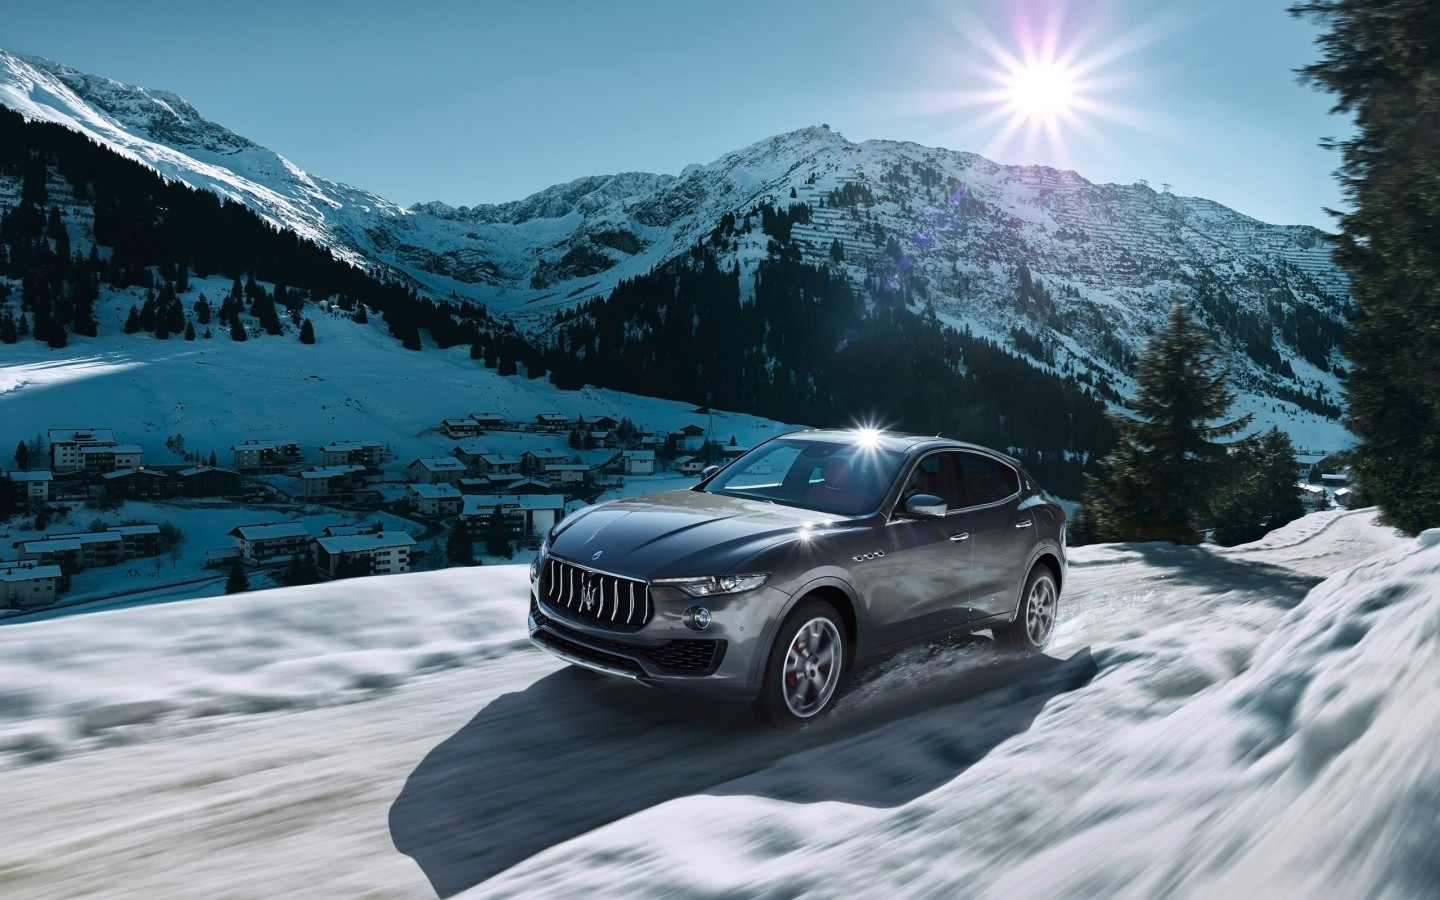 2016 Maserati Levante Wallpaper Hd Car Wallpapers Id 6208